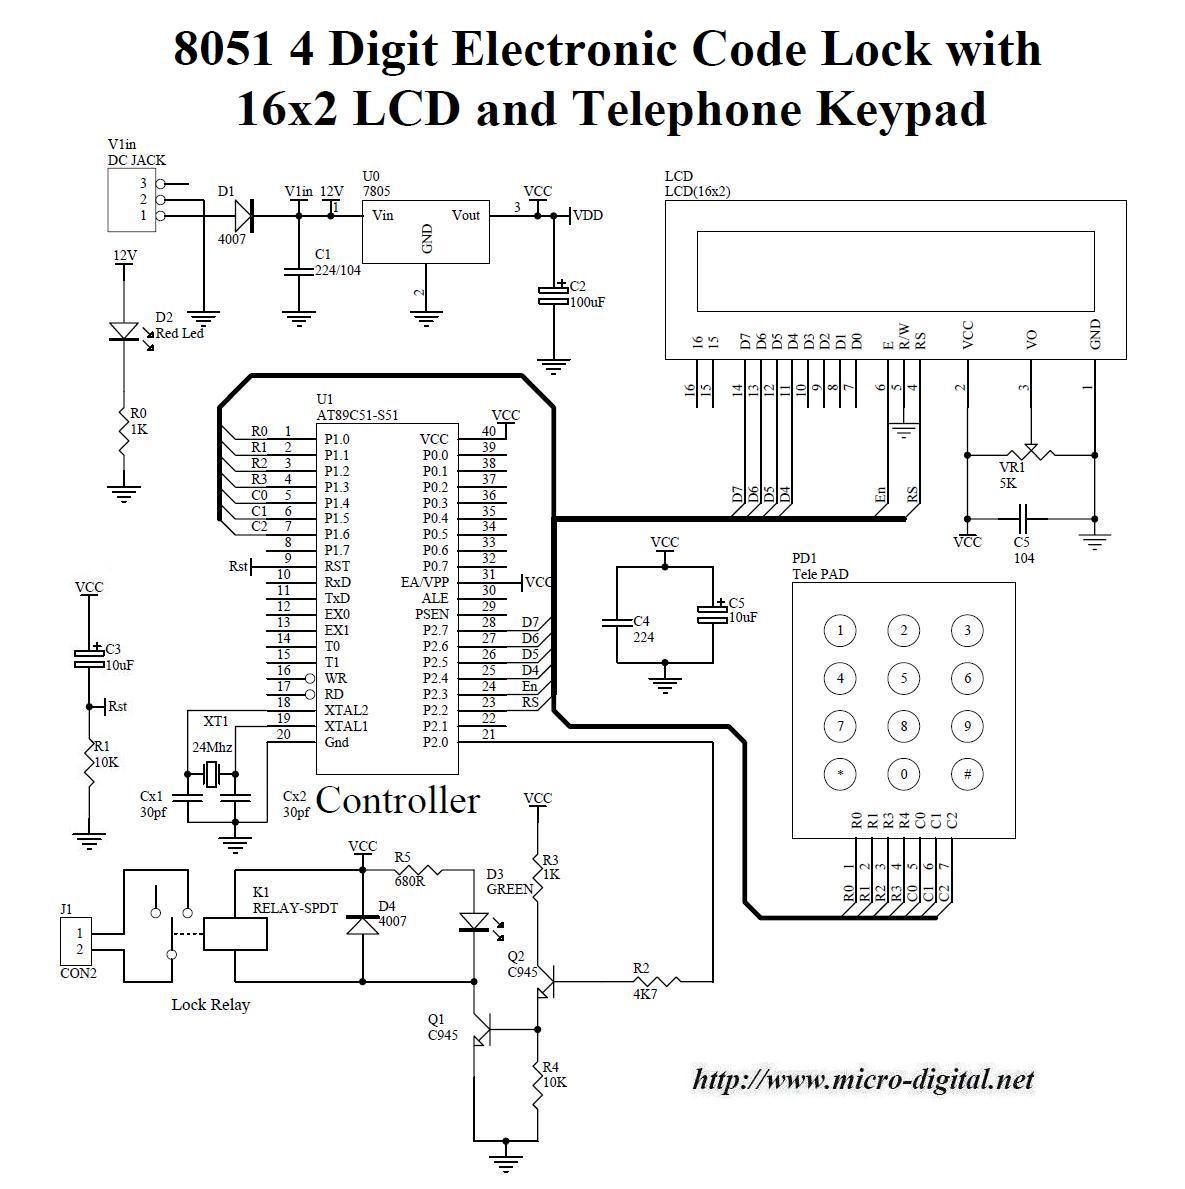 electronic number lock circuit diagram mercruiser wiring 7 4 8051 digit code with lcd and keypad